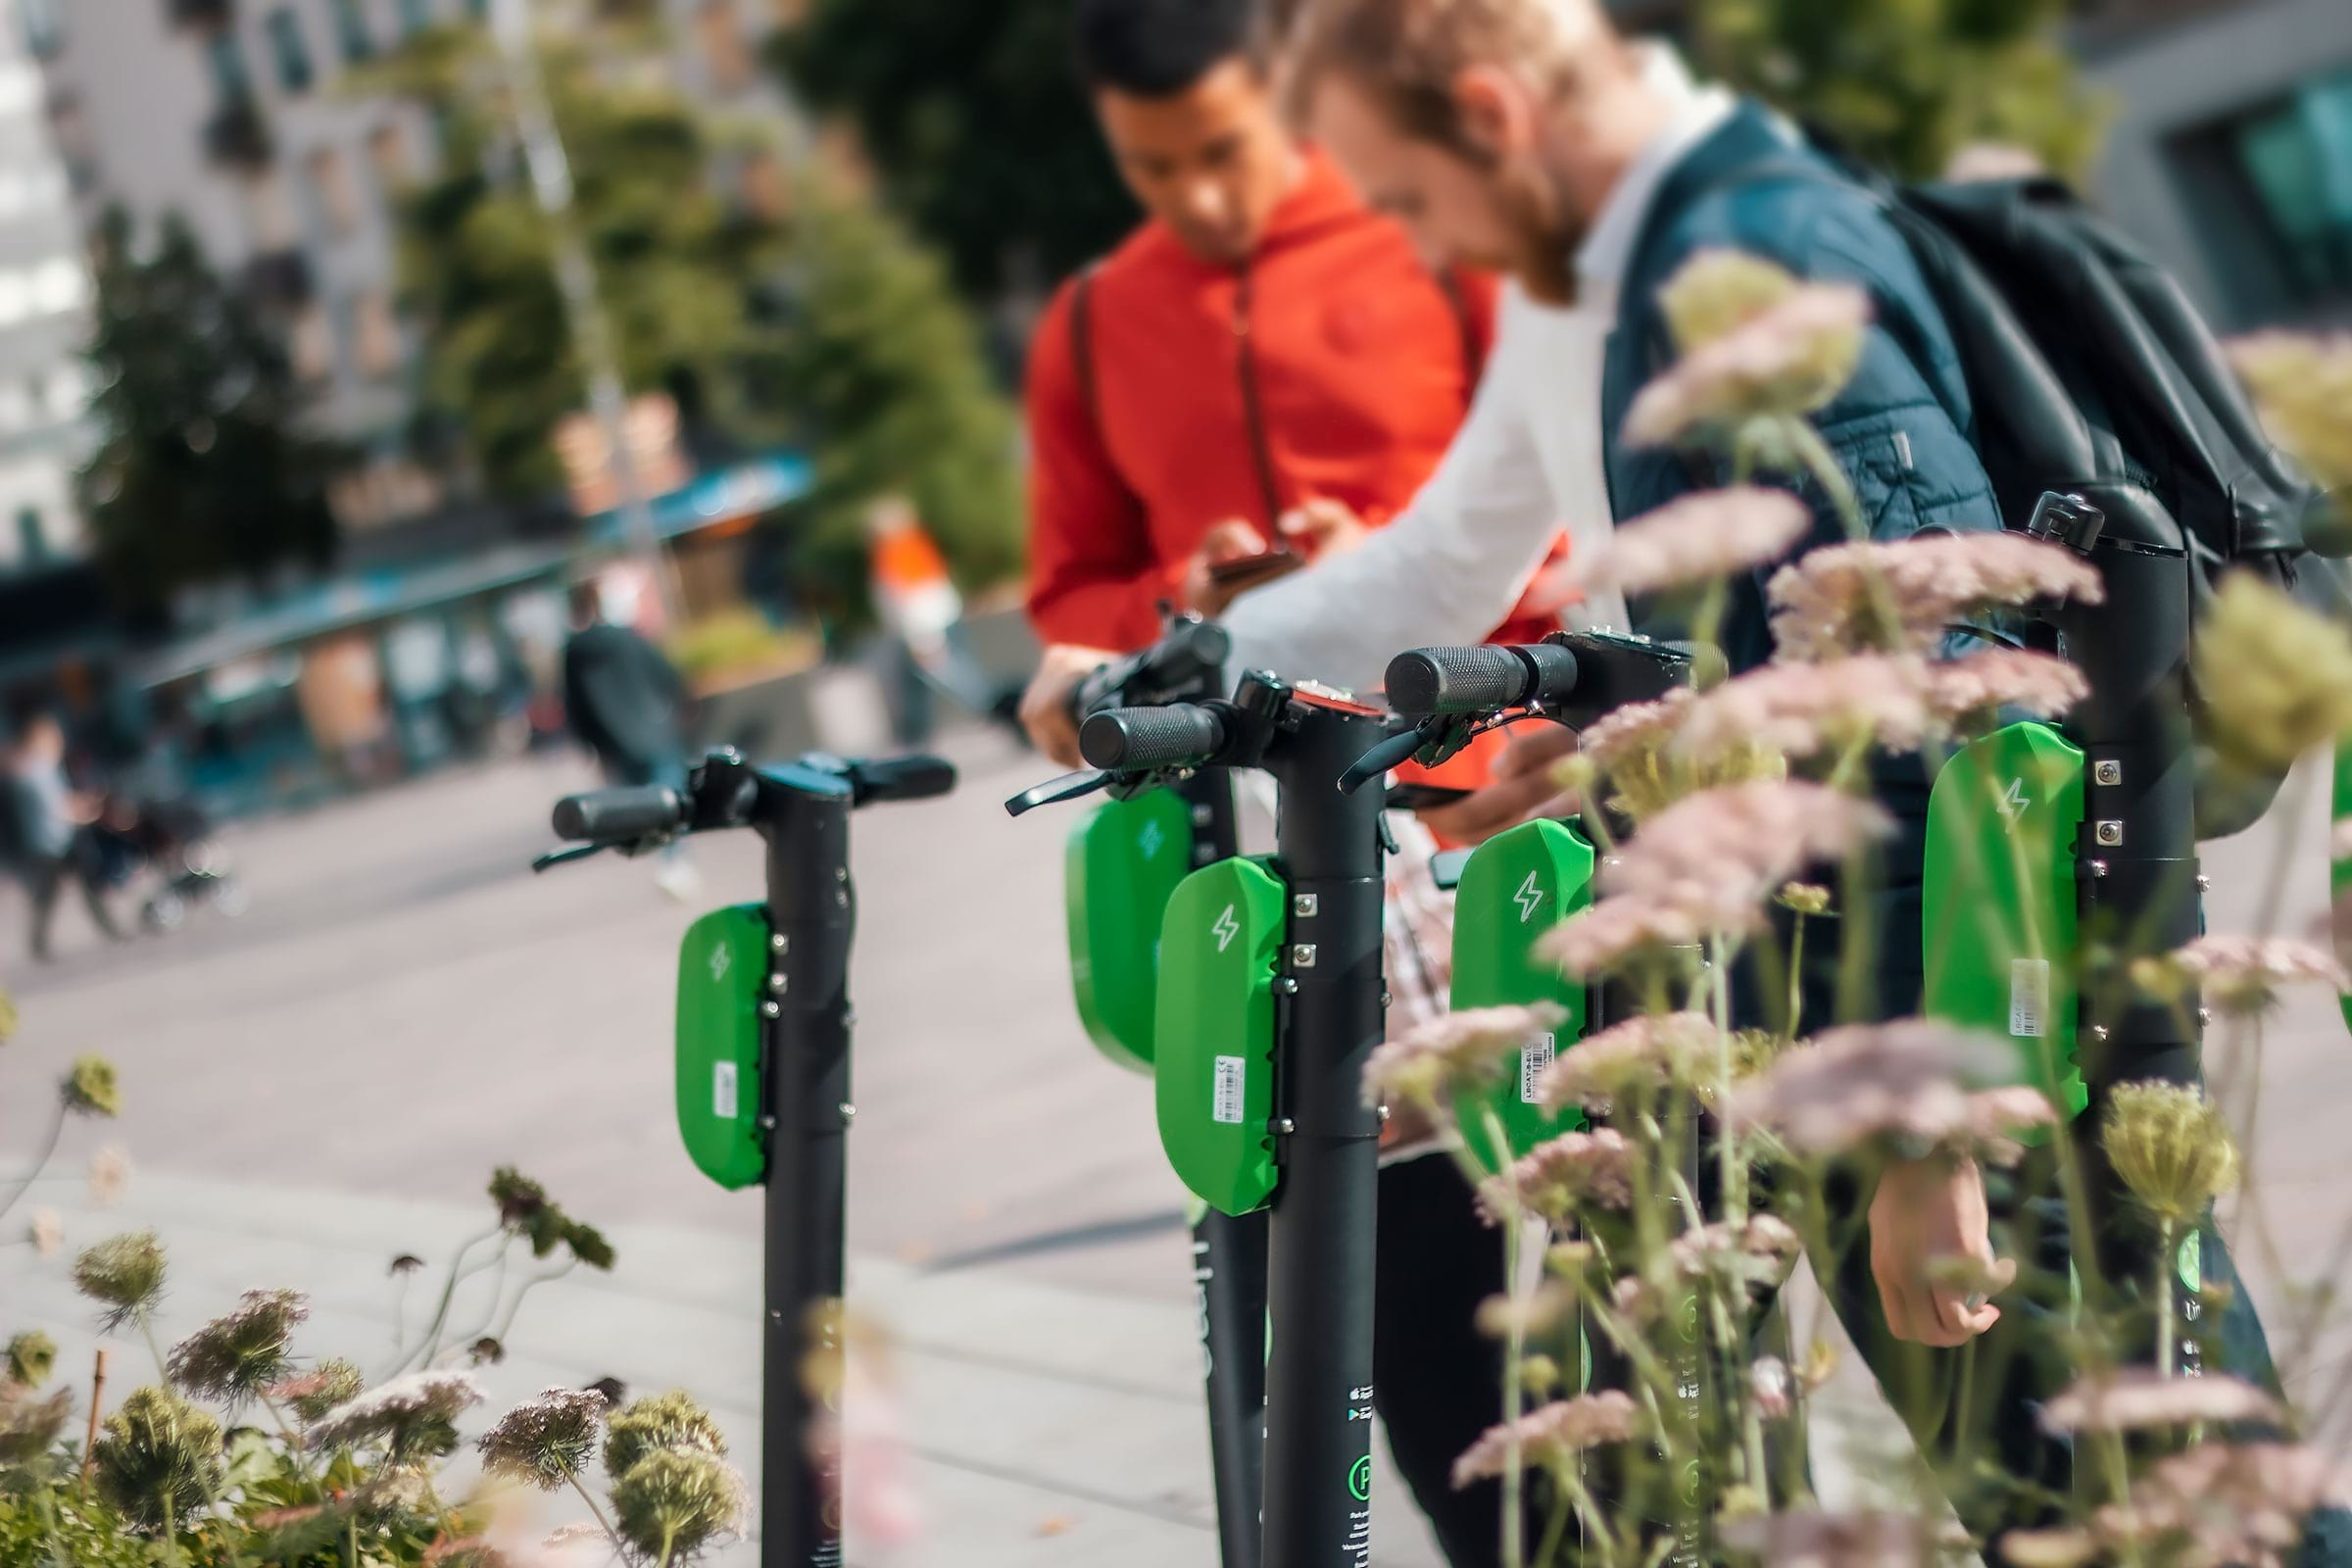 Getting around Stockholm - how to rent an electric scooter